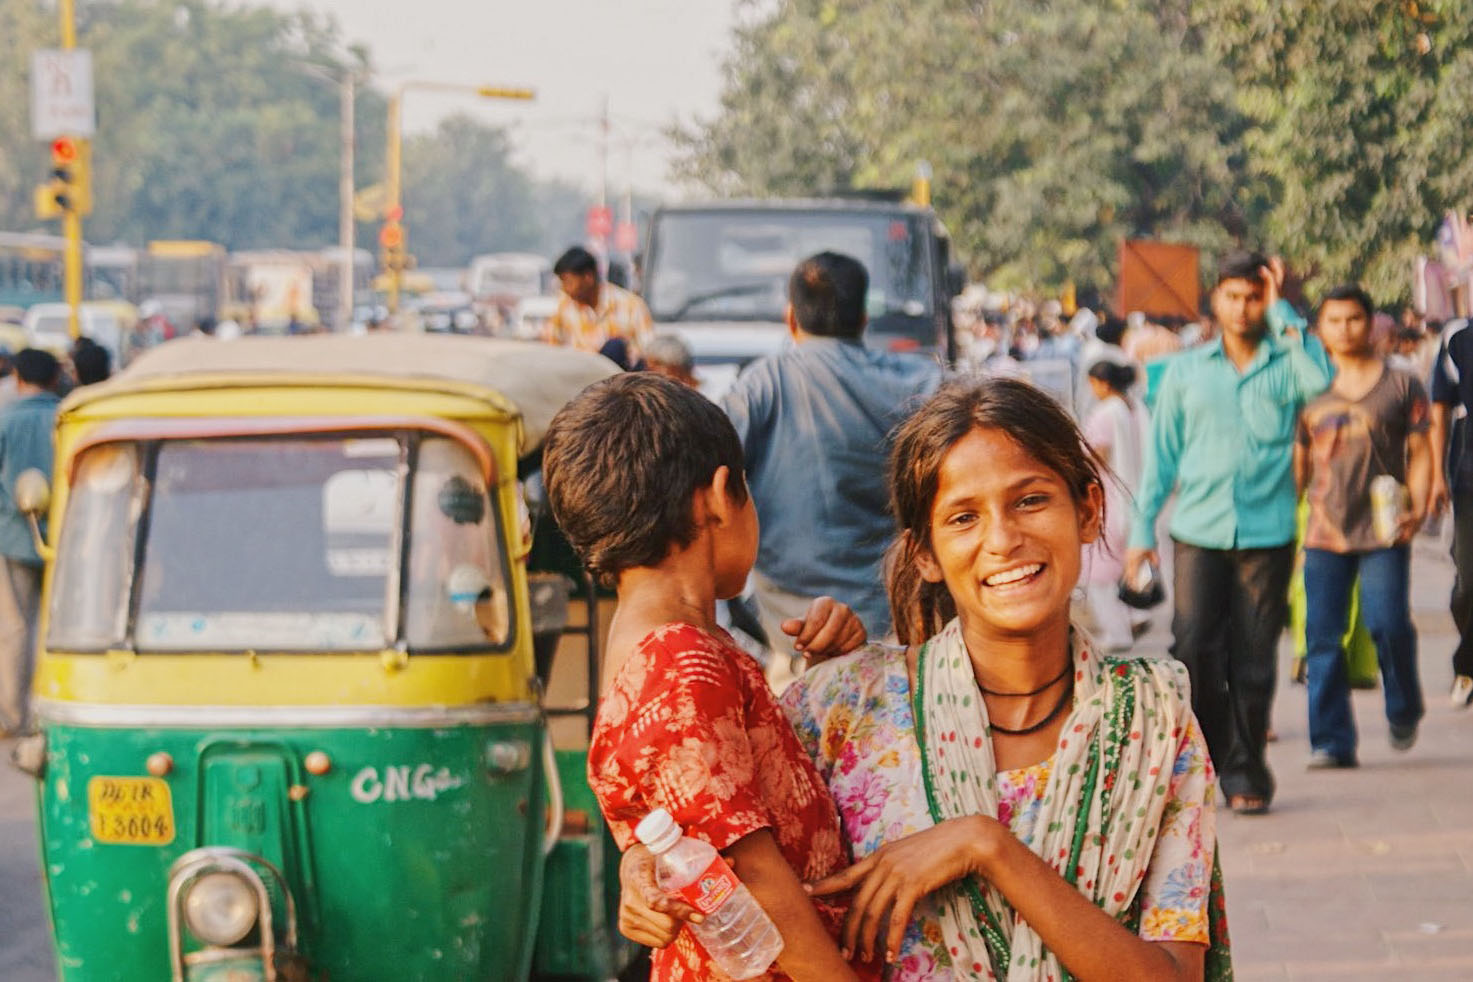 Gay Reise Indien Streetlife in New Delhi with a woman and his child © Coupleofmen.com